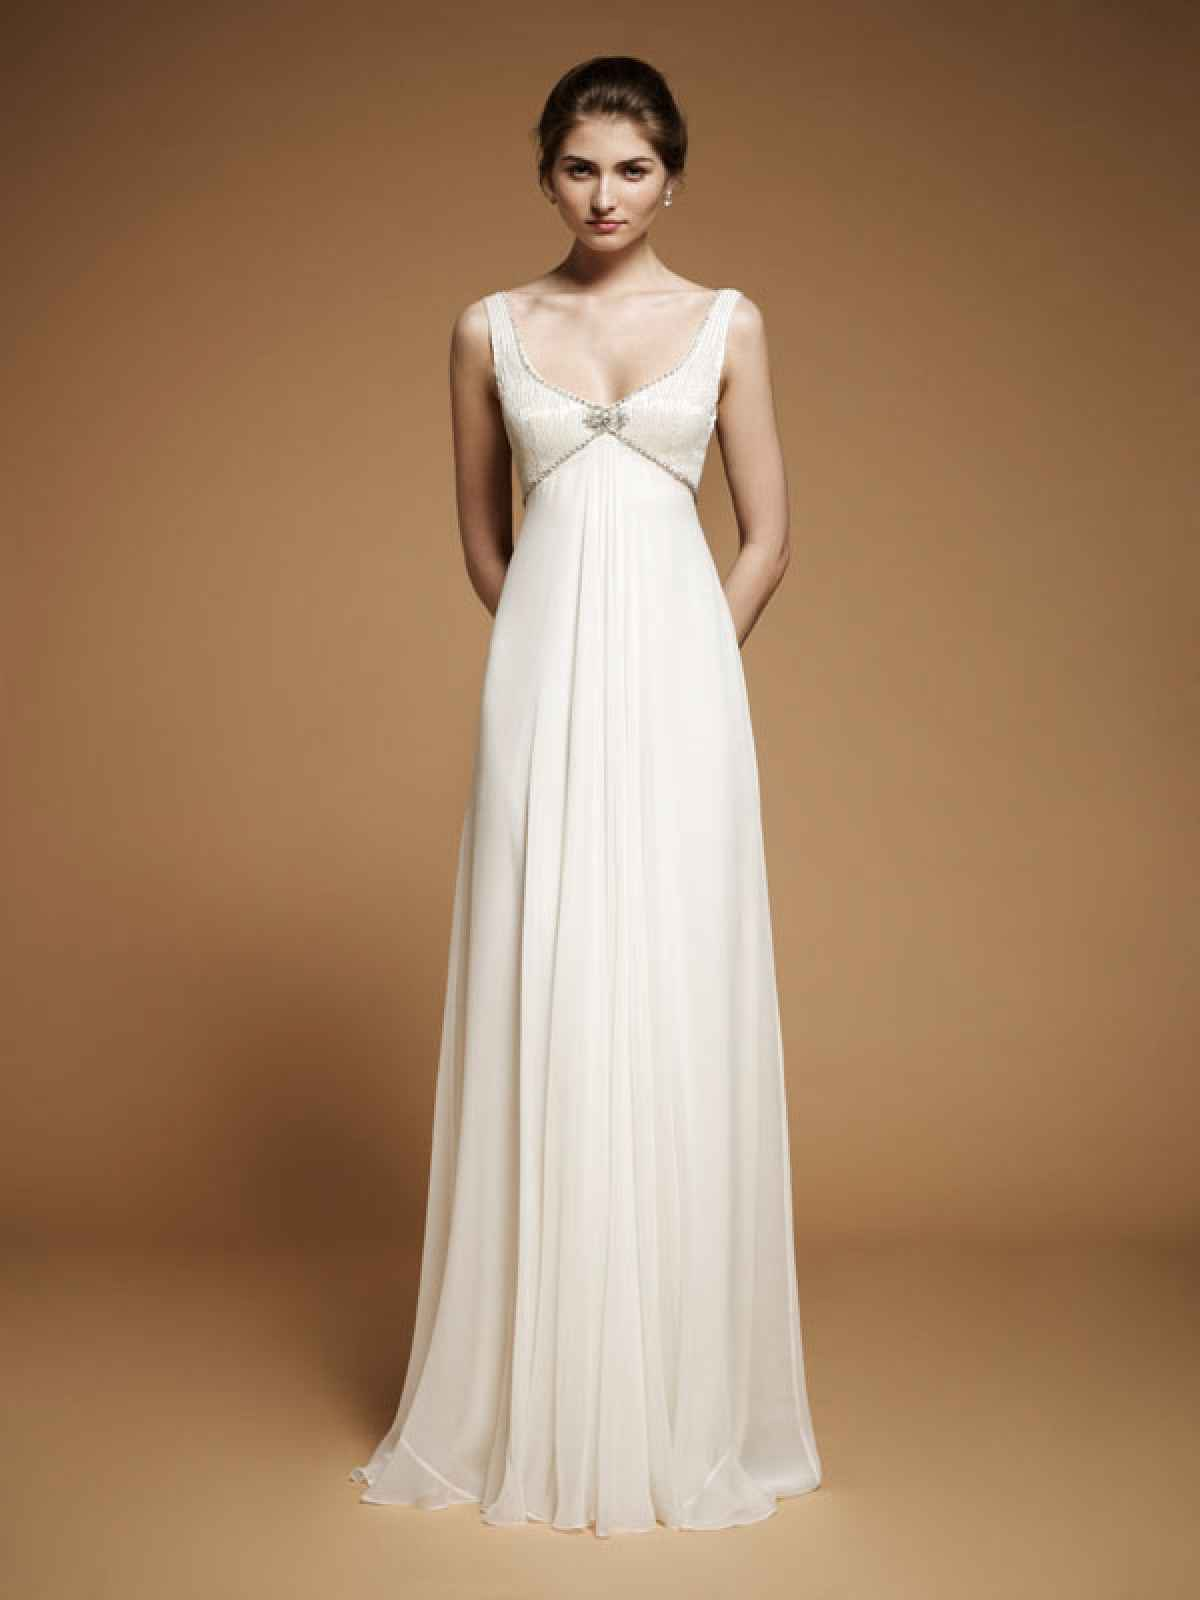 Wedding dresses for second marriages for Wedding dresses for older brides second marriage